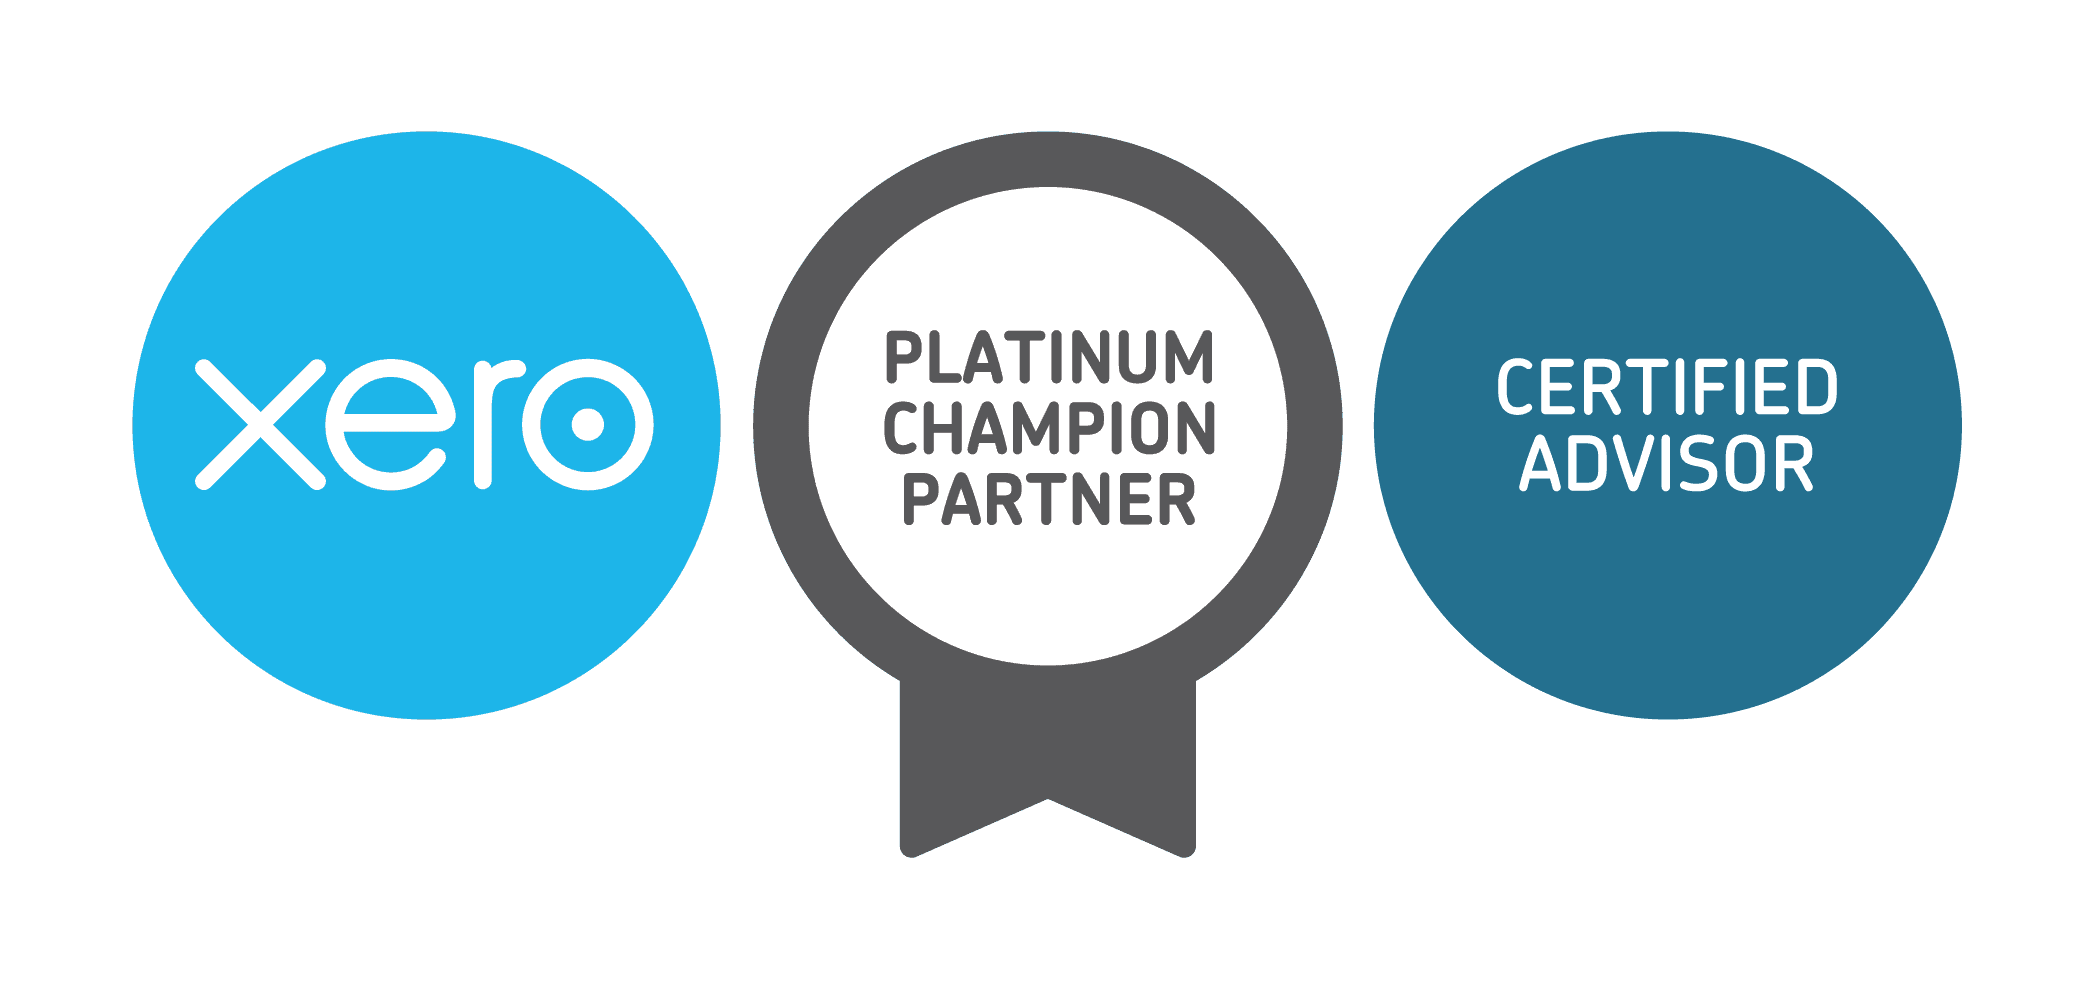 xero-platinum-champion-partner + cert-advisor-badges-RGB